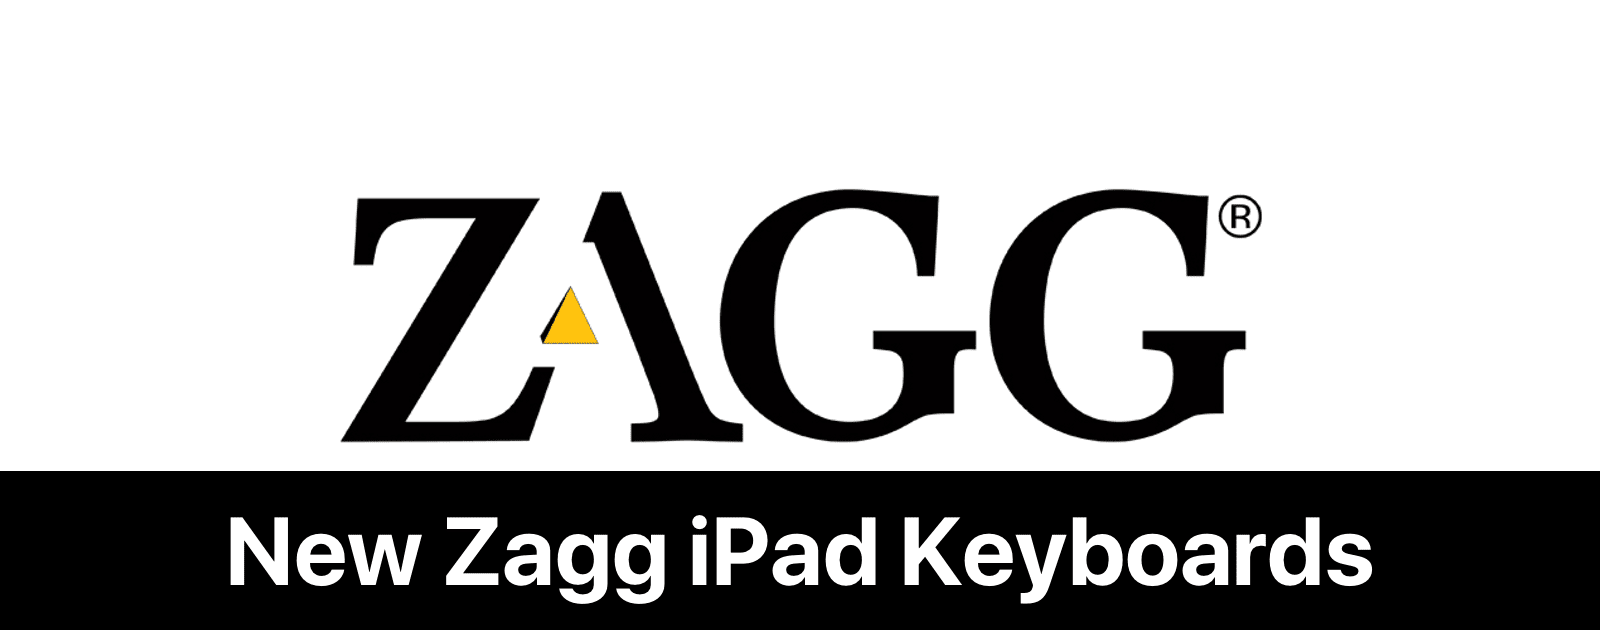 Revealed Two New Zagg Ipad Keyboards With Apple Pencil